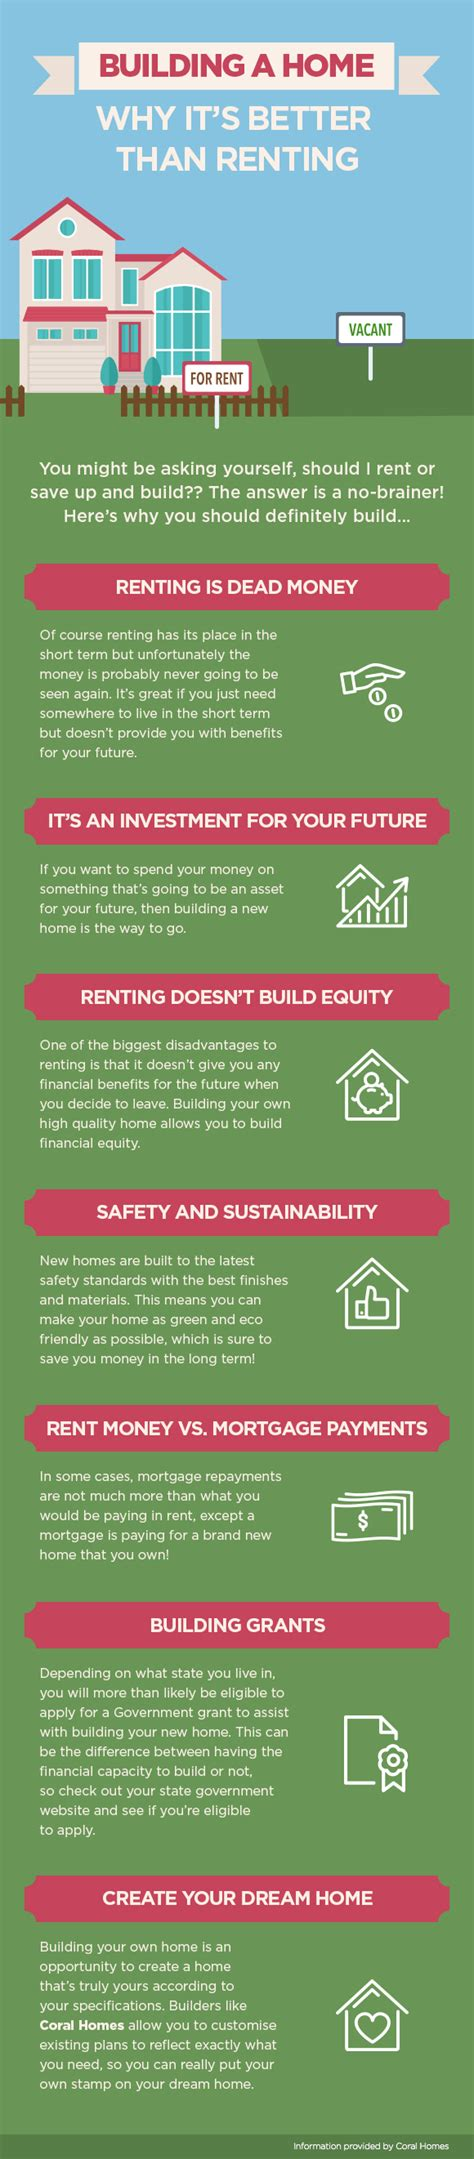 why is buying a house better than renting an apartment boomeon building a home why it s better than renting a house